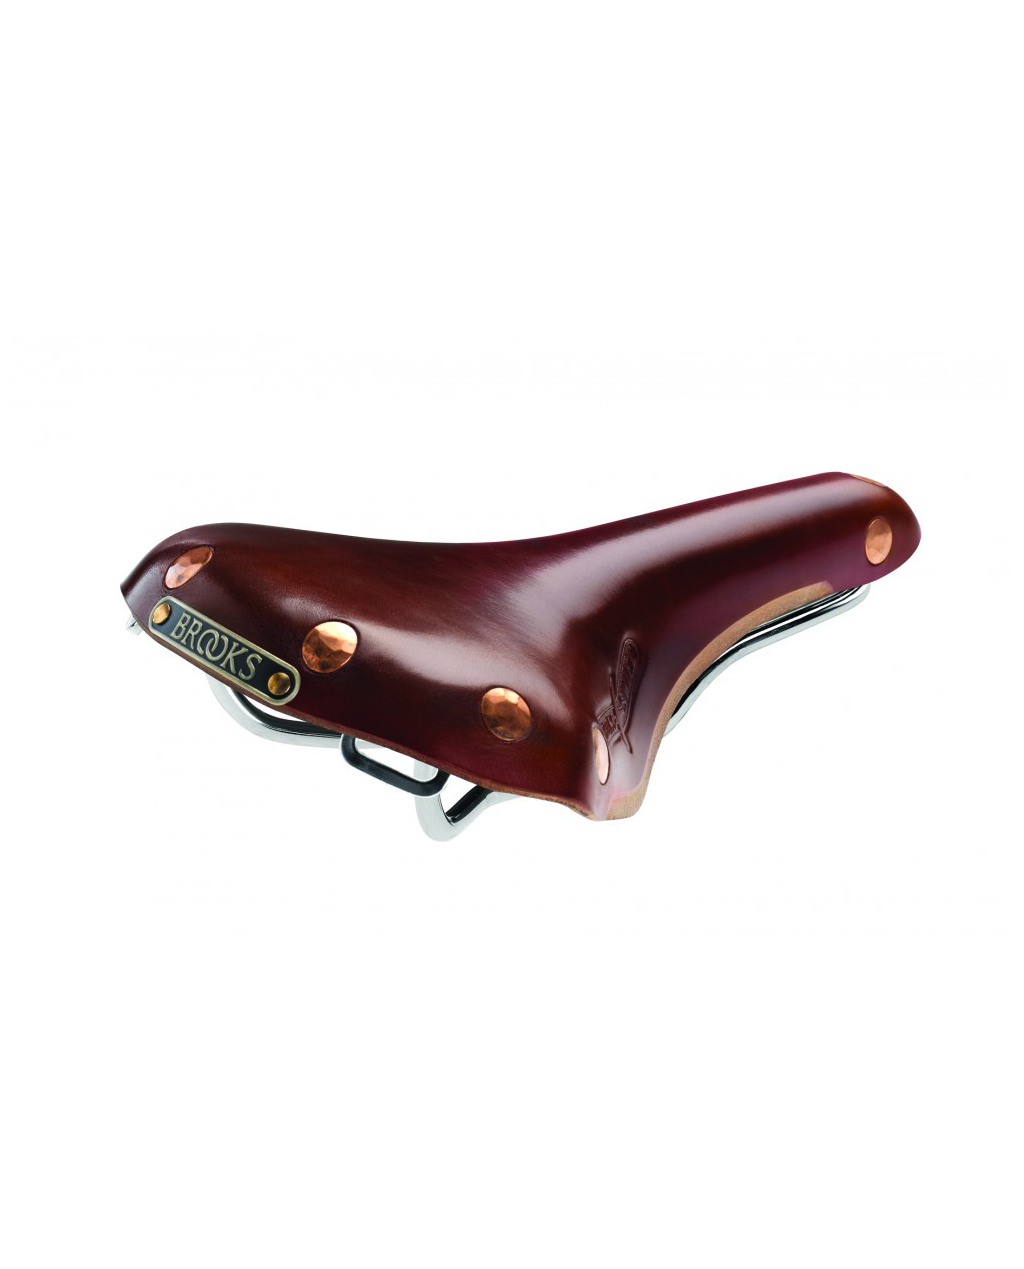 Brooks Swift Chrome - Brown